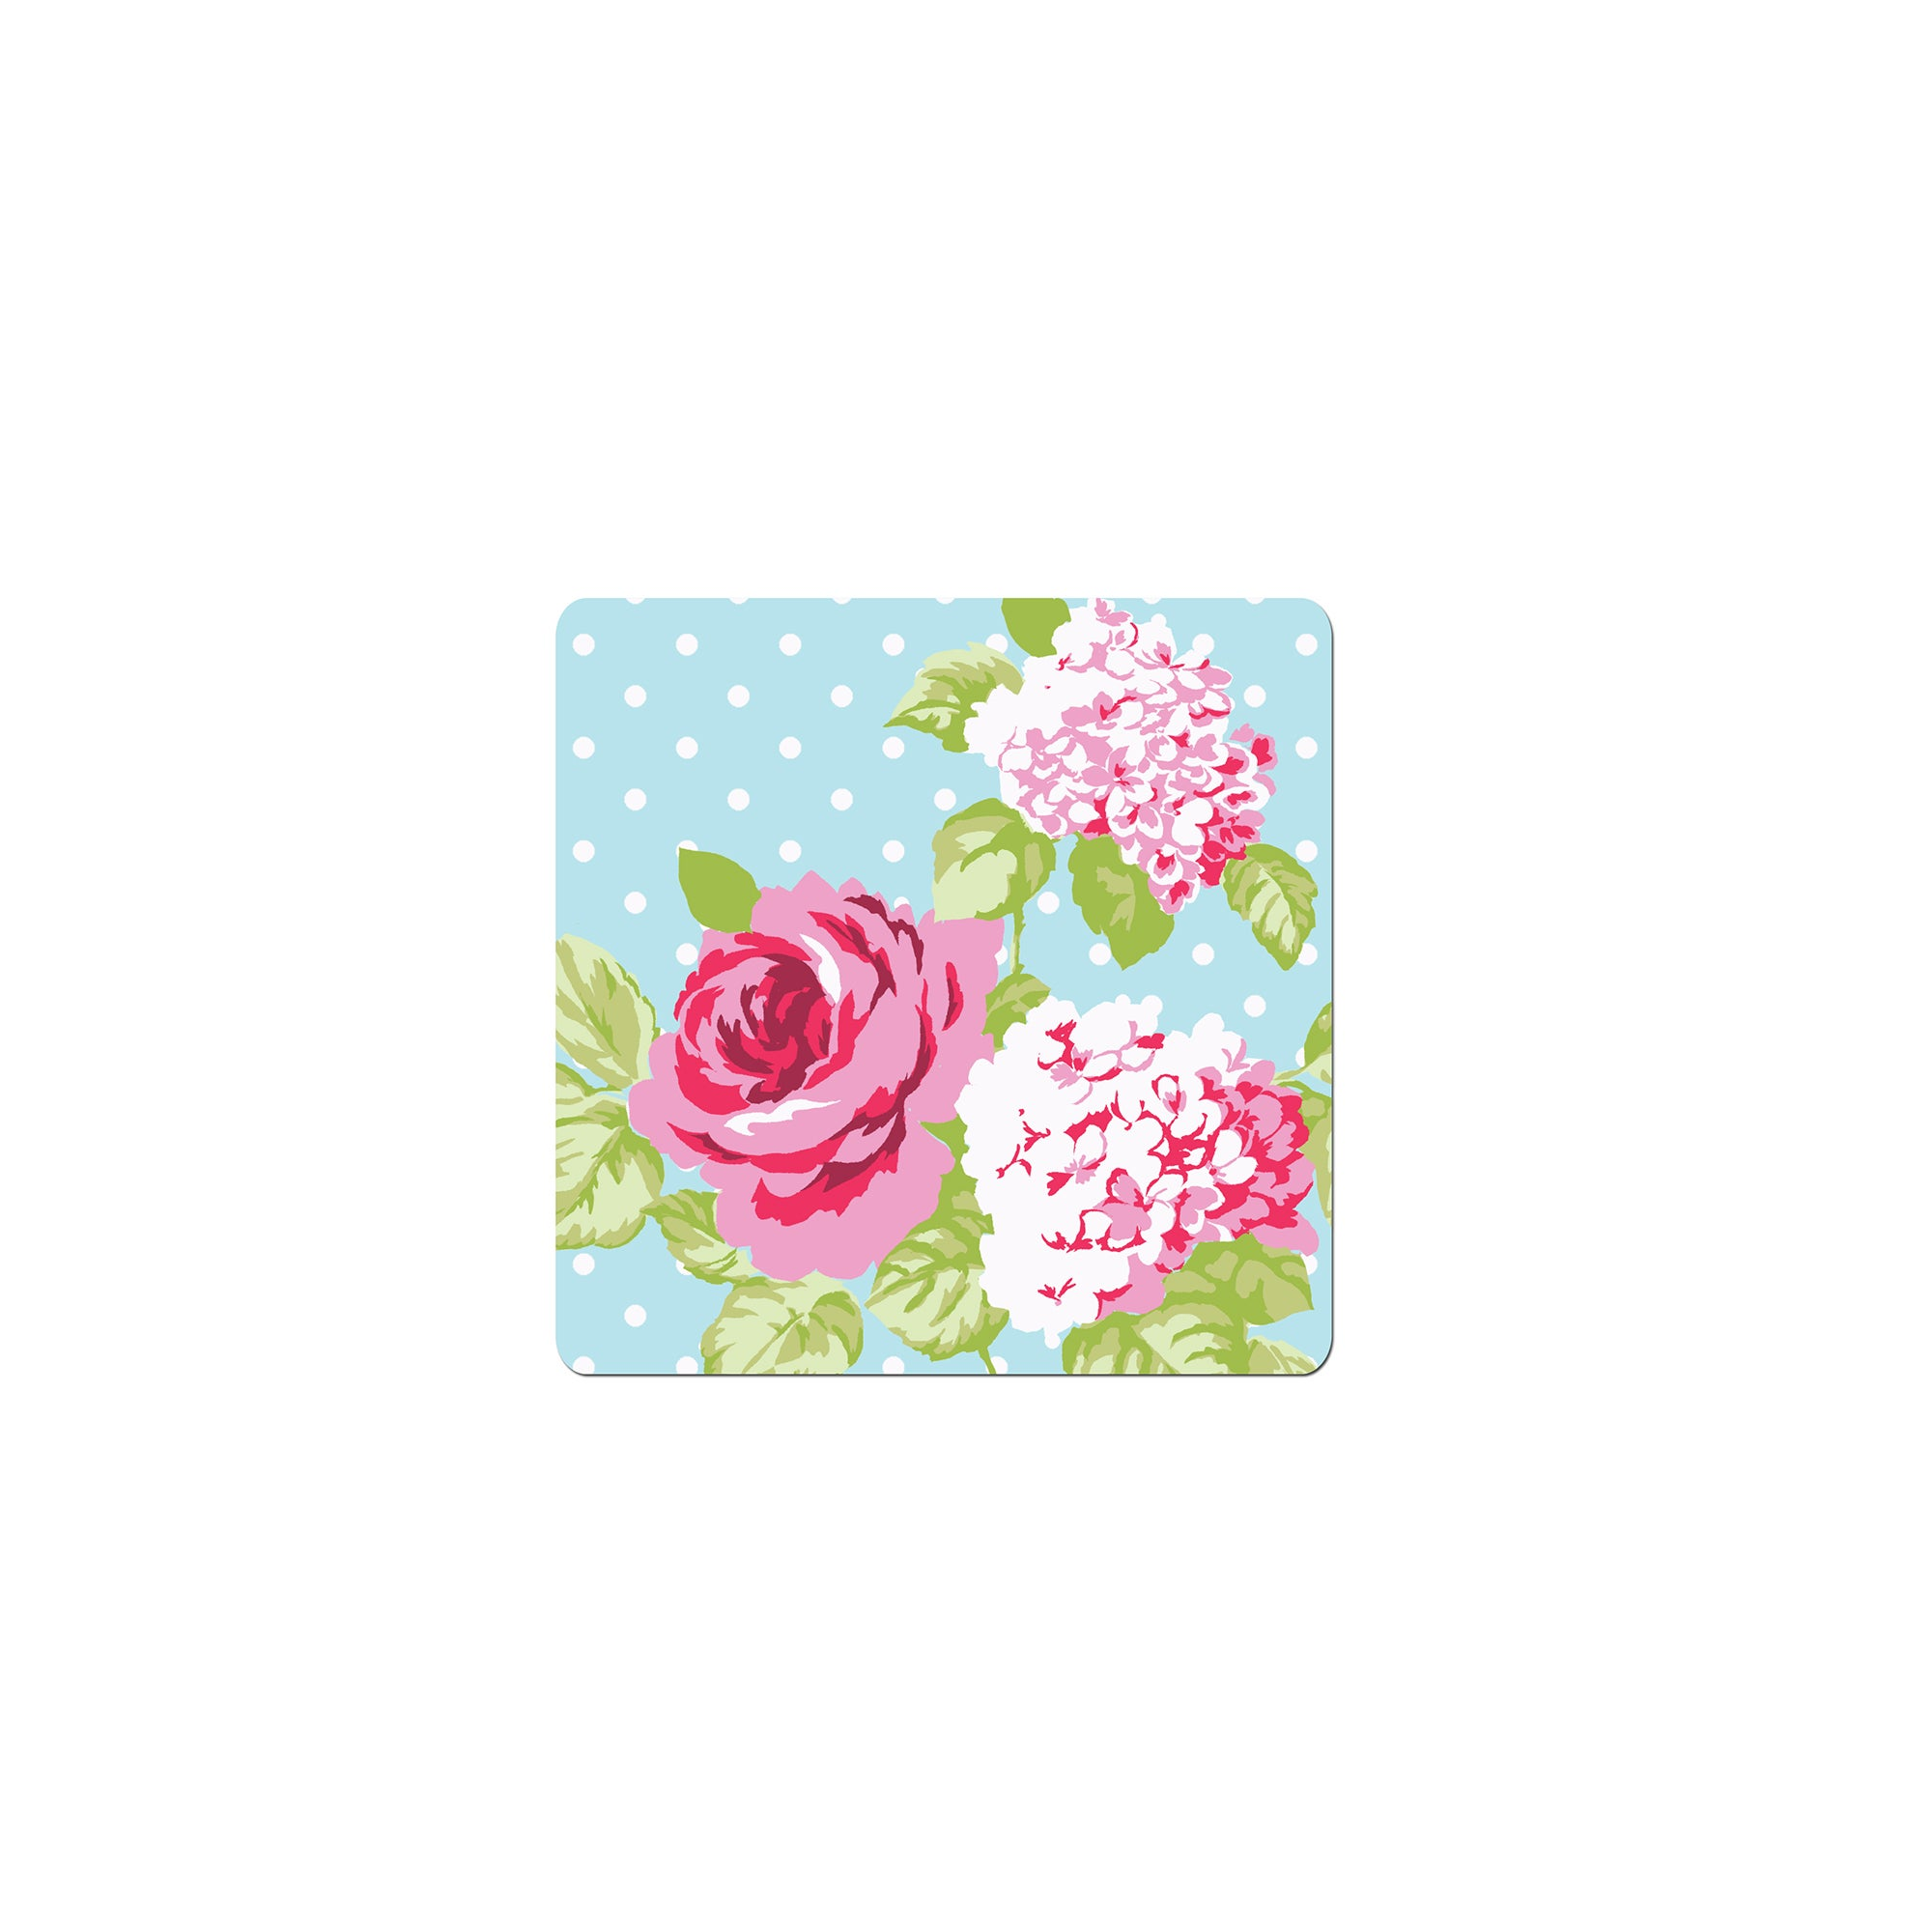 Rose and Ellis Clarendon Collection Set of 4 Coasters